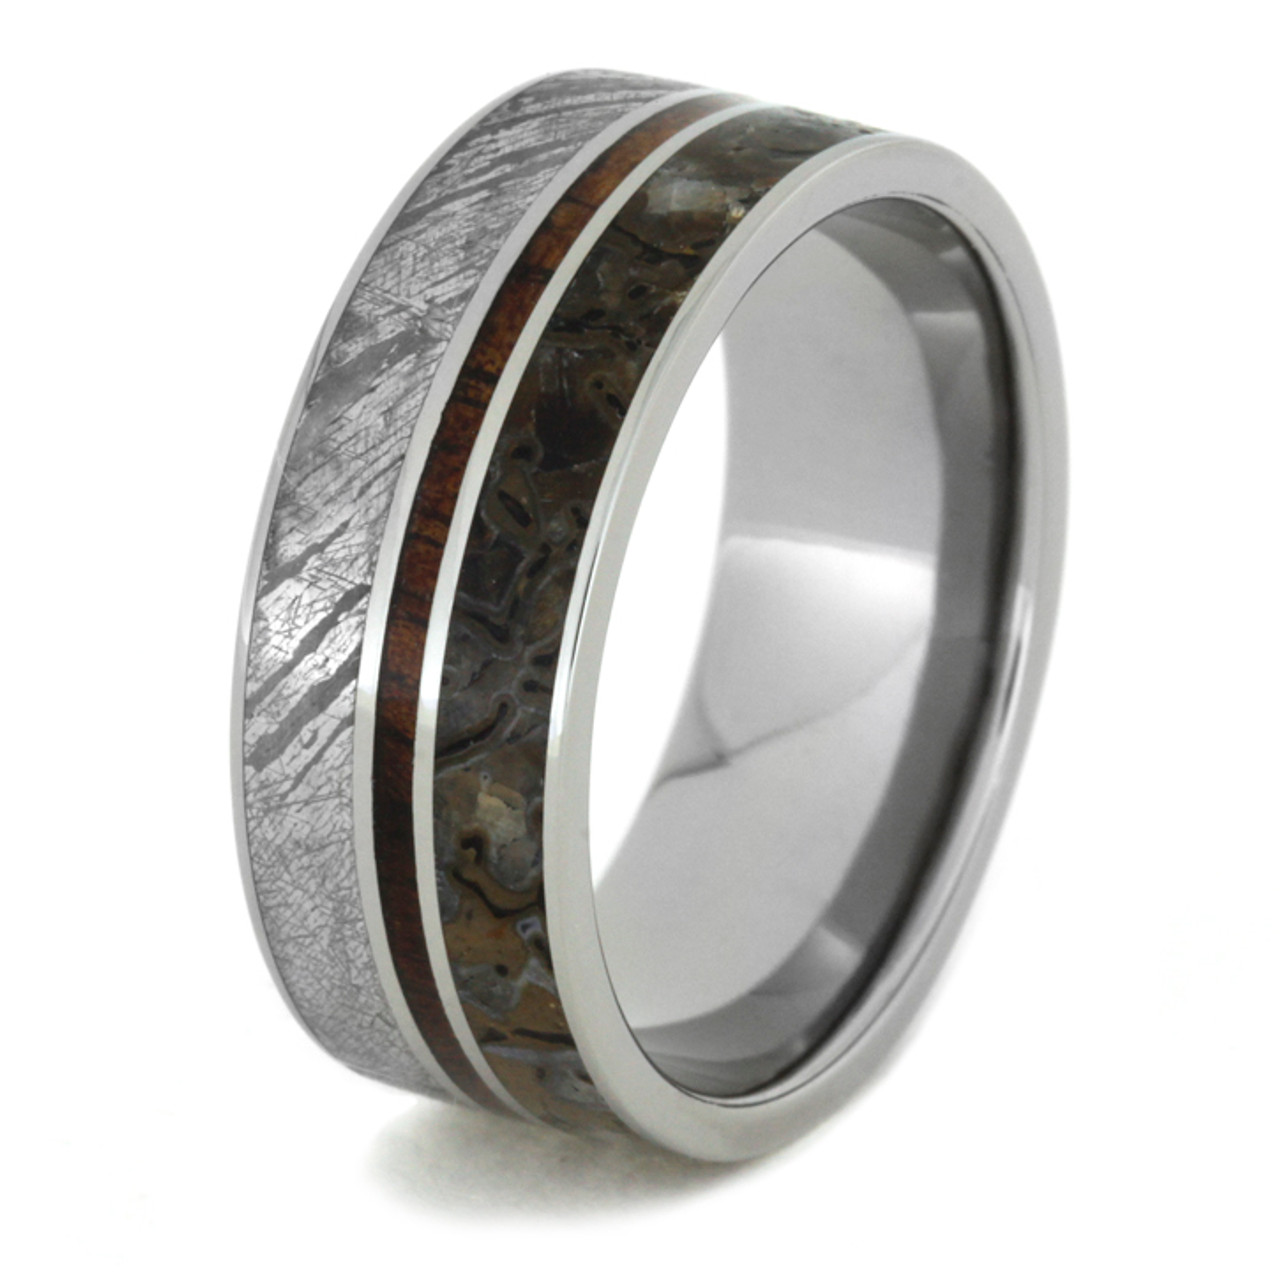 fabulous wedding ring best meteorite meteorites of fresh dinosaur rings band bone